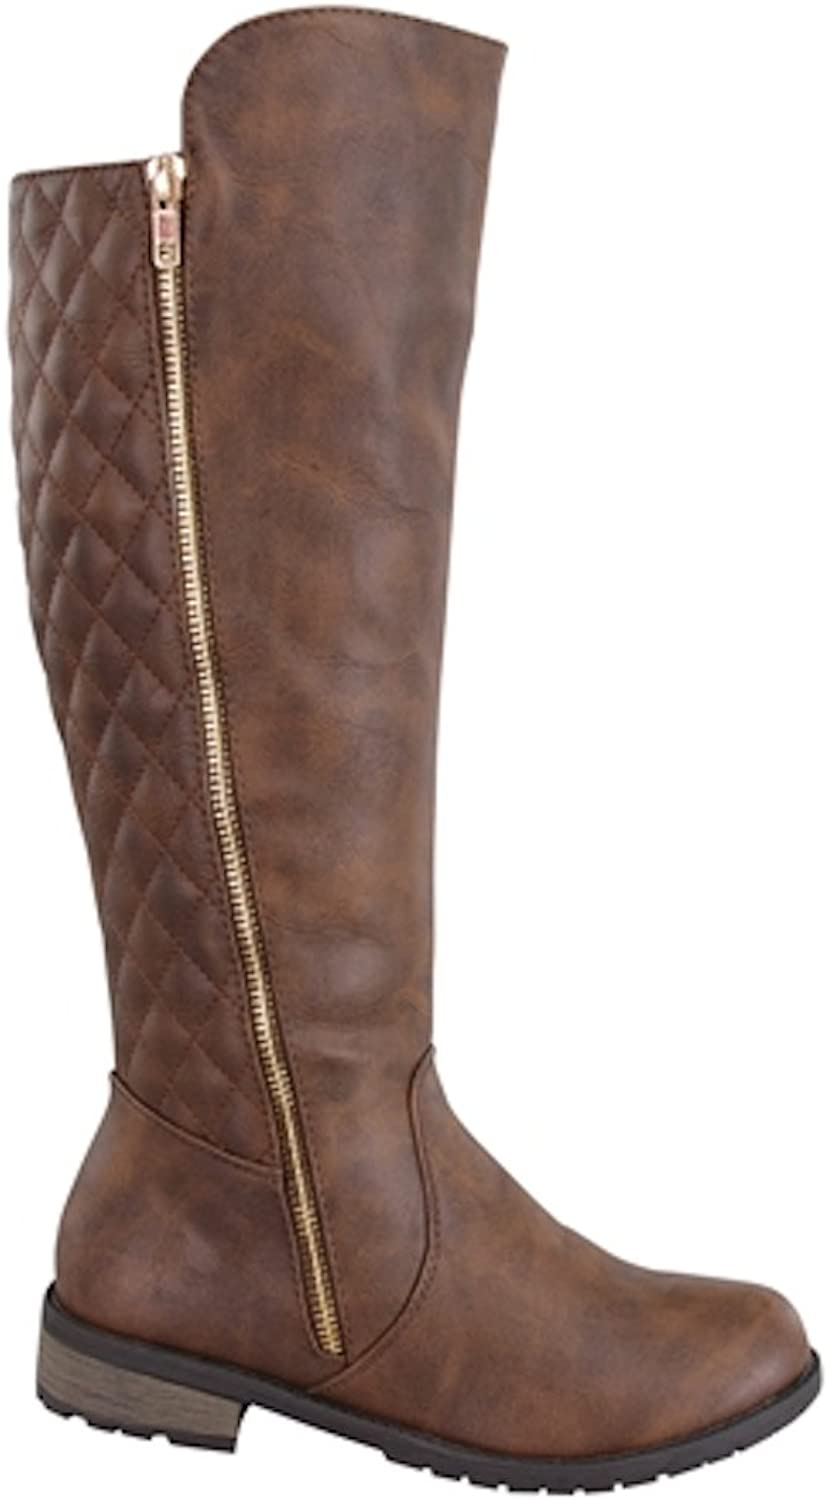 La Bella Fashion Women's Knee High Stitched Back Dress Riding Heel Boots in Black, Taupe, Brown